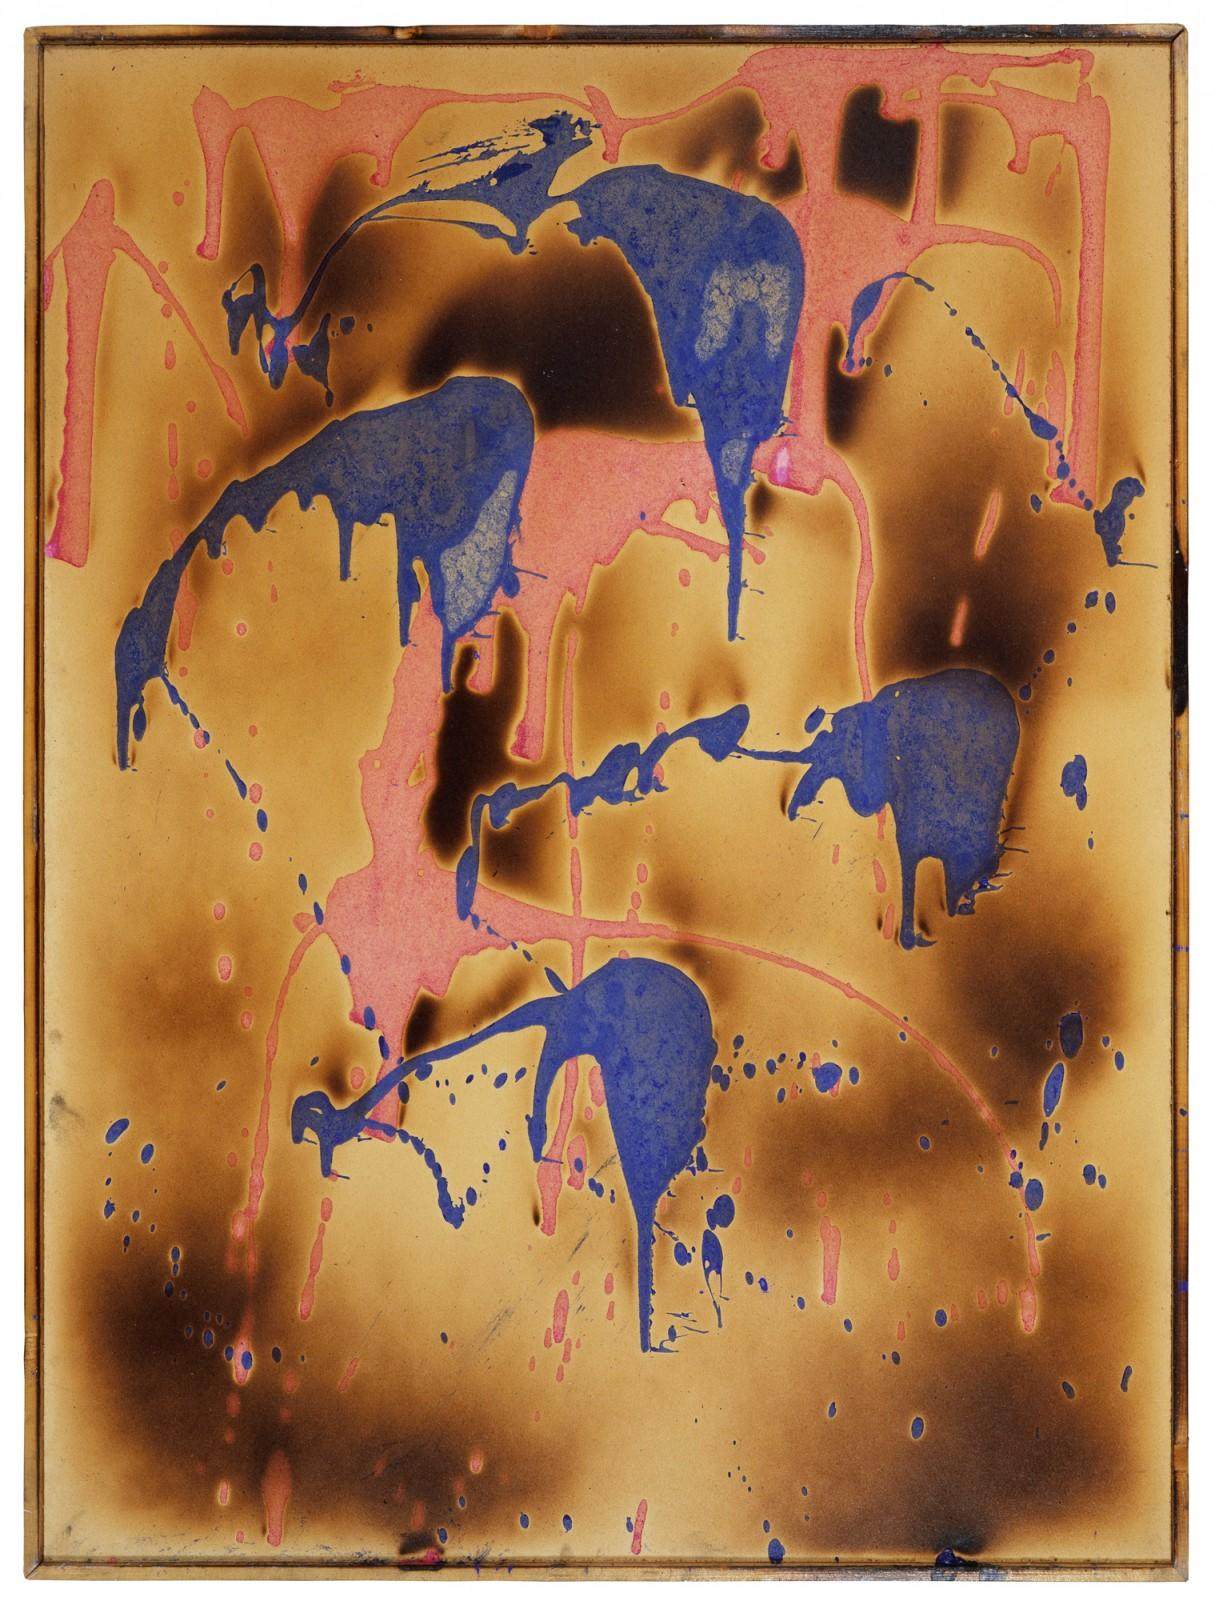 yves-klein-untitled-colored-fire-painting-fc9-1961